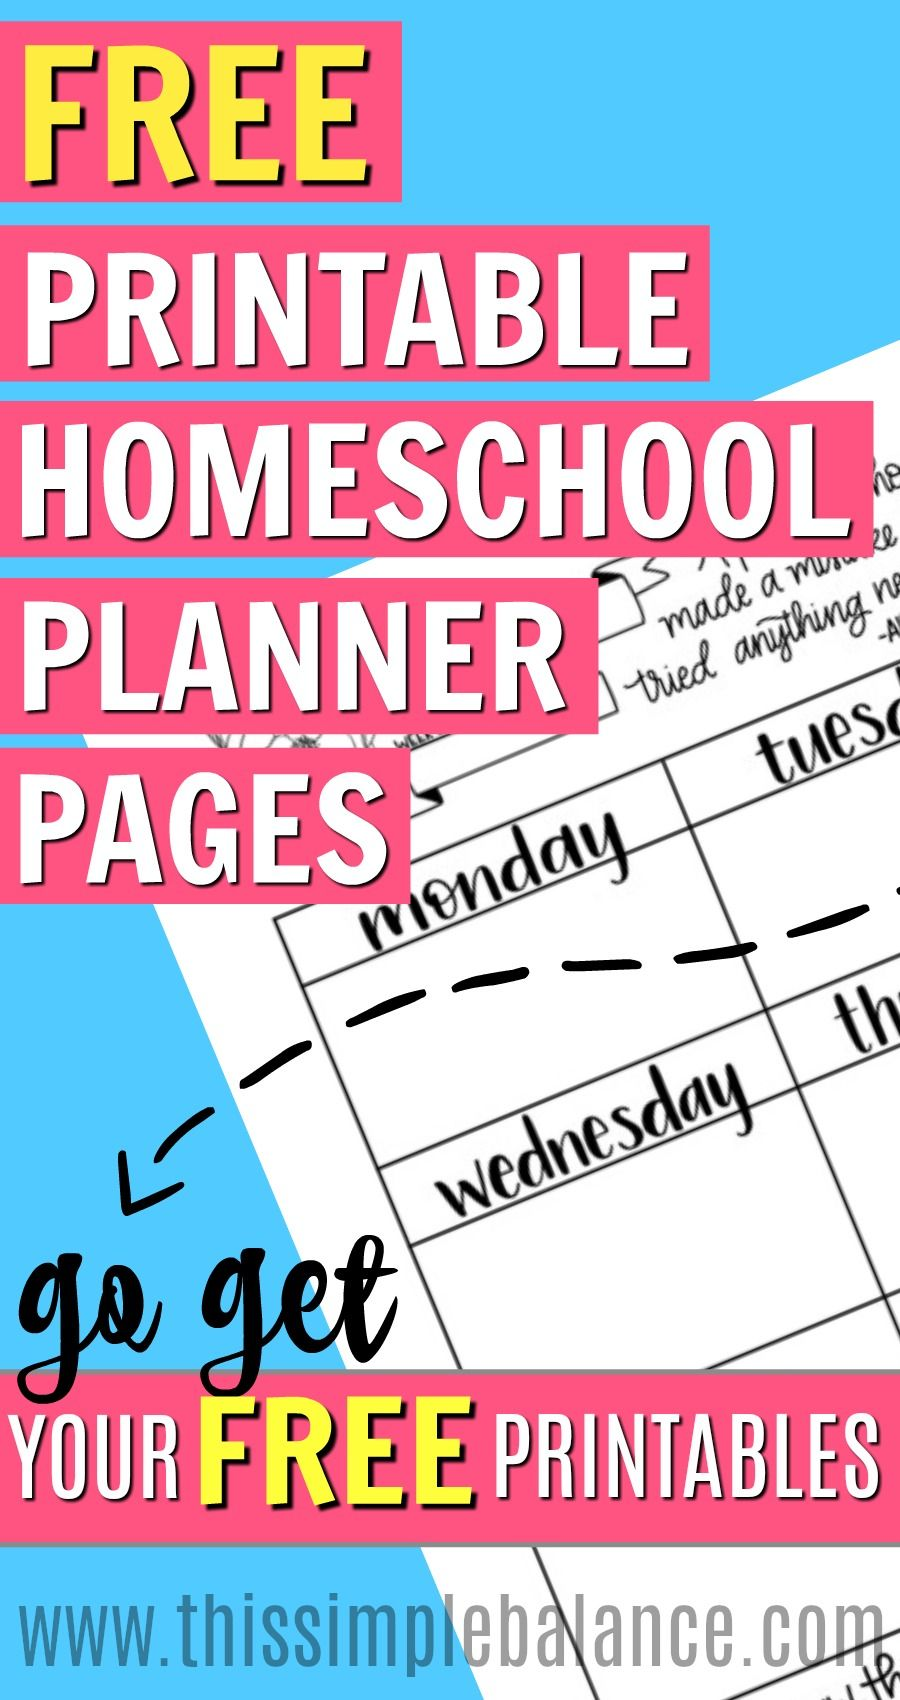 FREE Printable Homeschool Planner Pages (perfect for